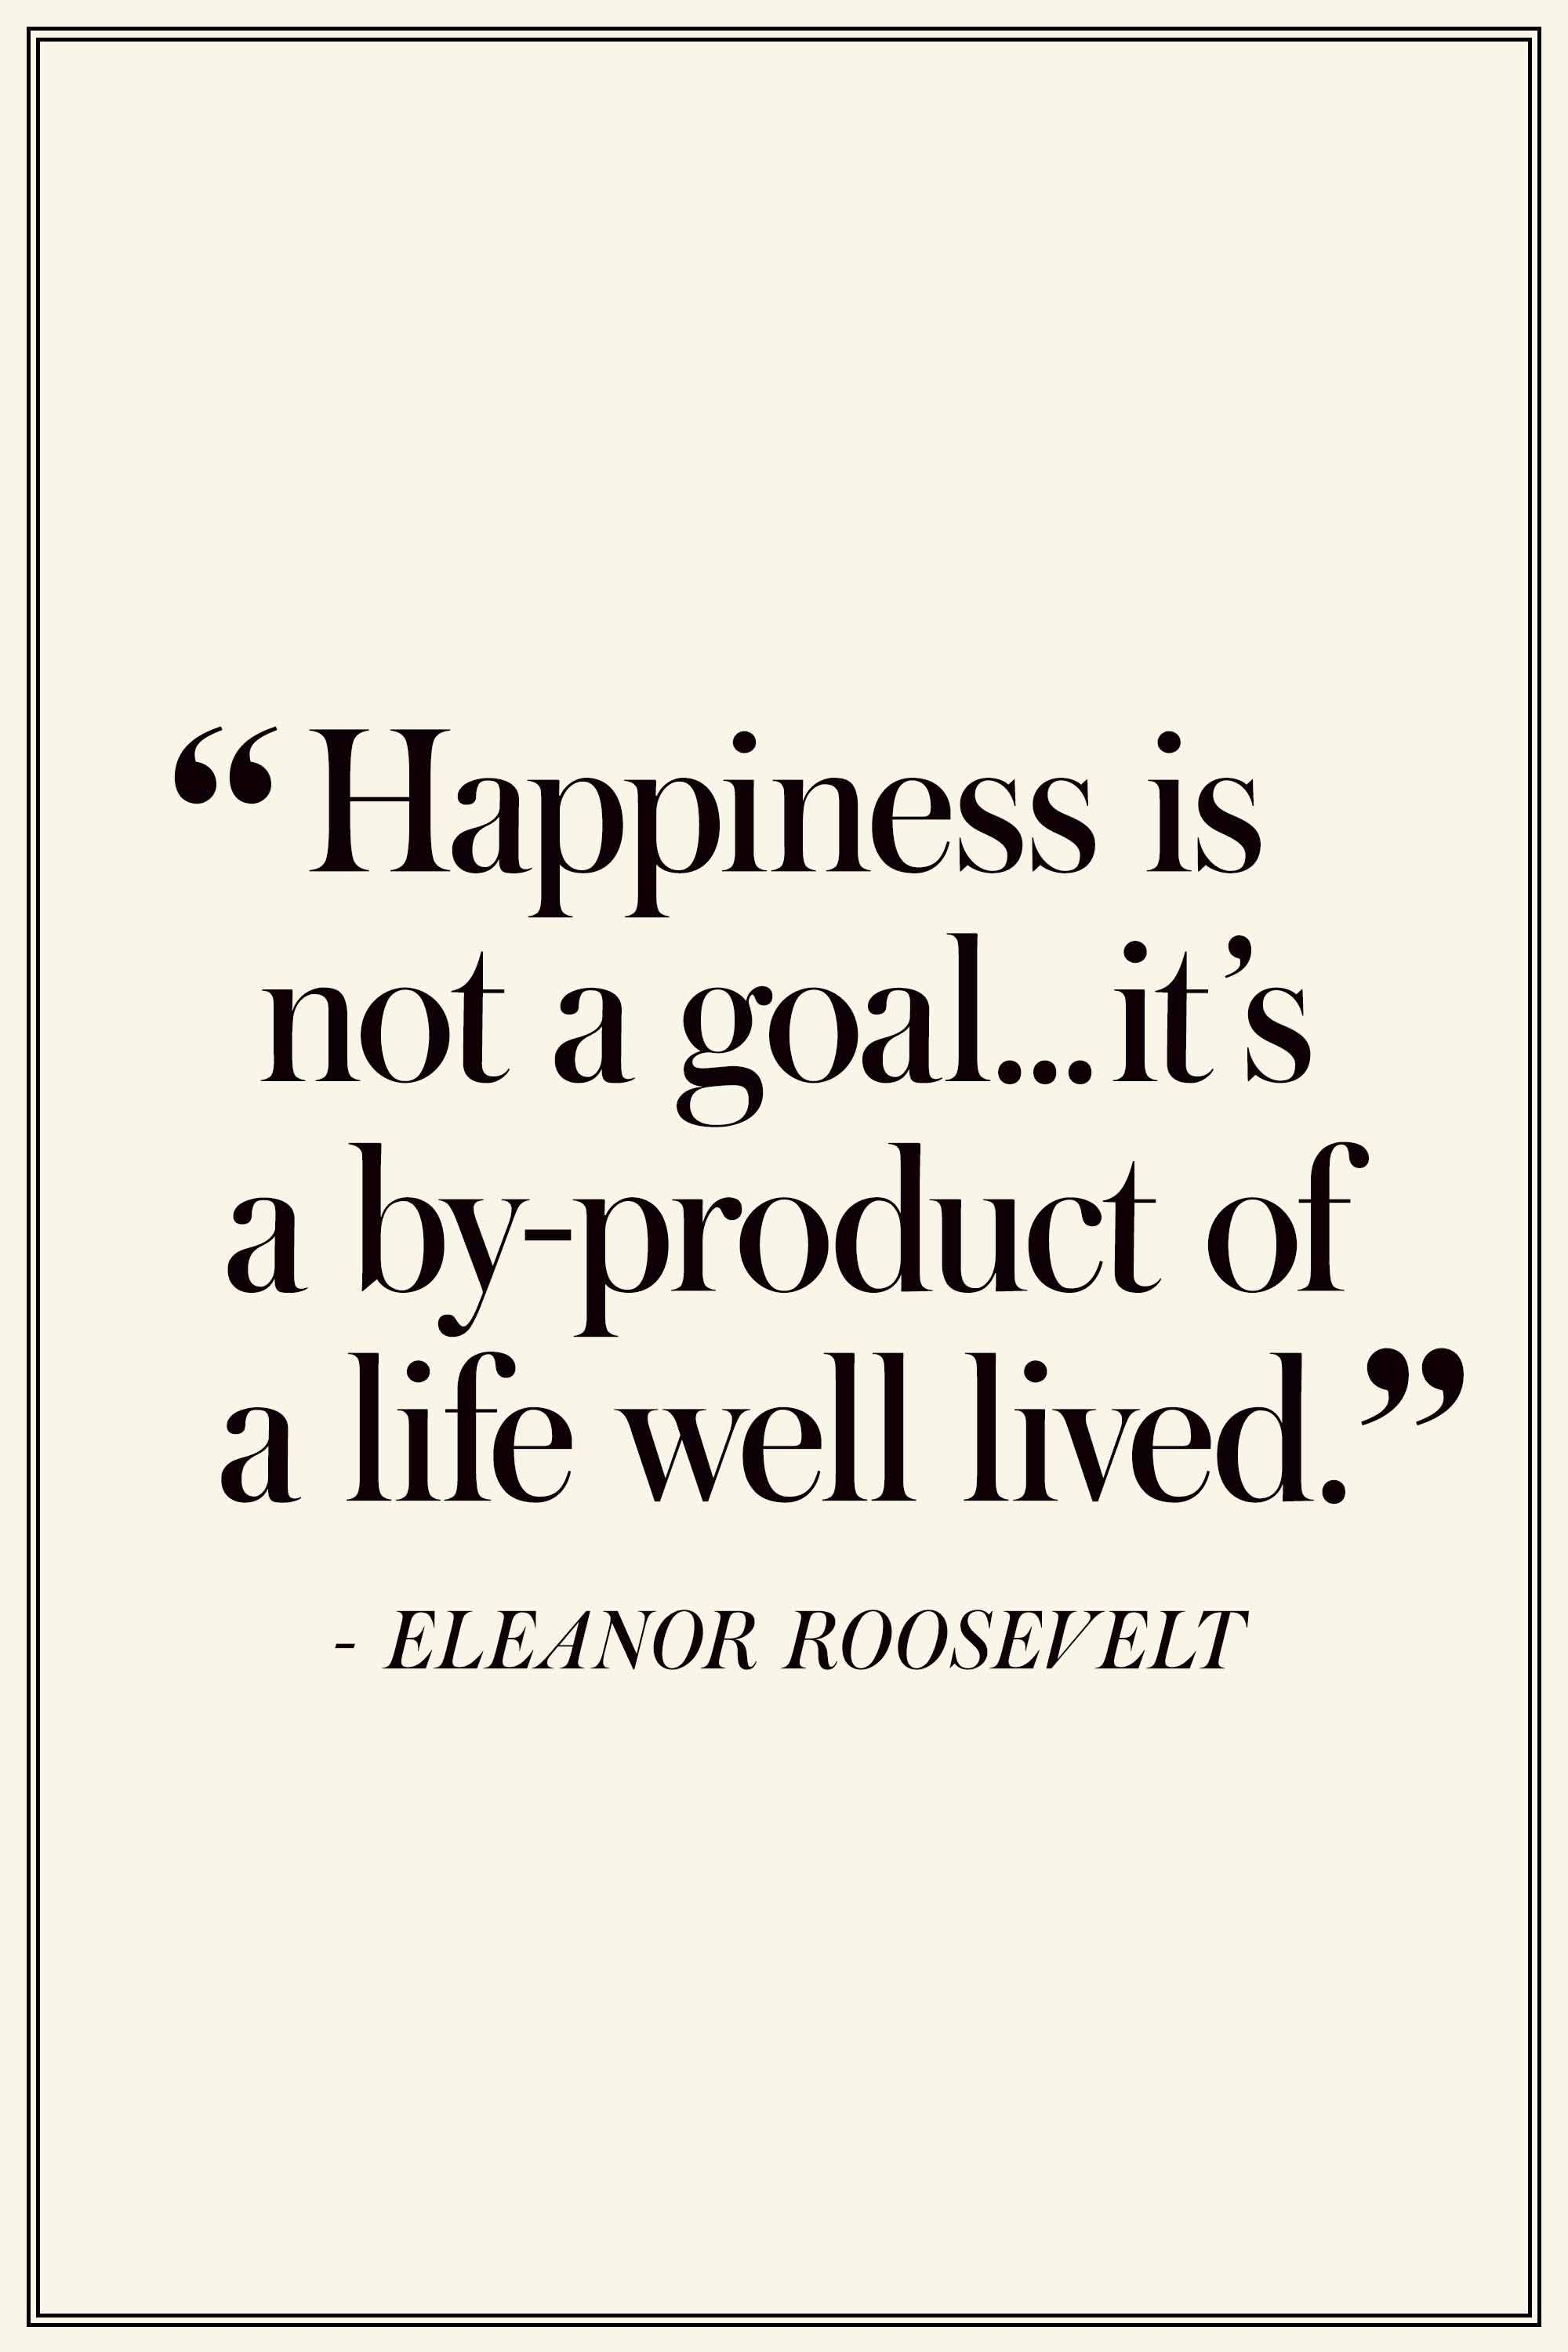 Image of: Friendship Image Town Country Magazine Best Quotes On Happiness Famous Quotes About Happiness